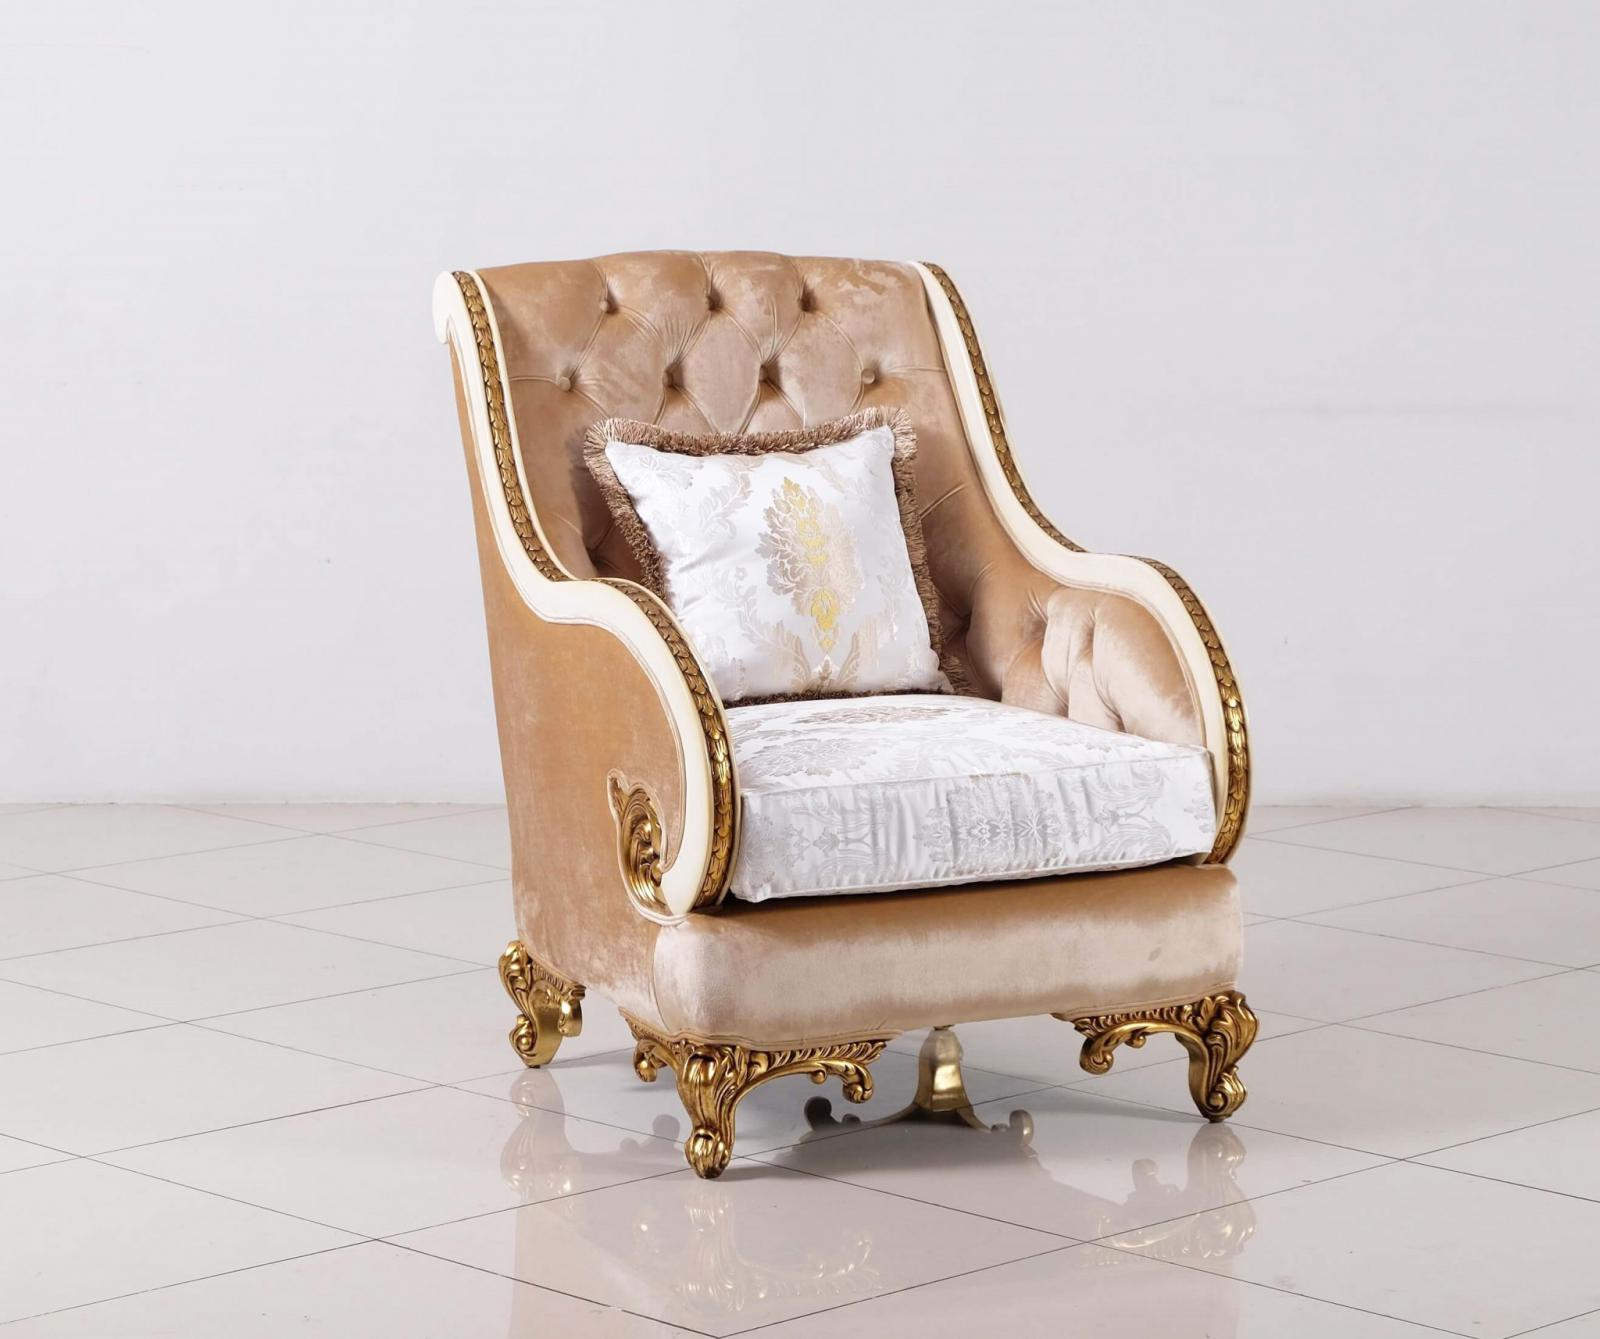 Classic  Traditional Gold  Antique   Beige Wood  Solid Hardwood and Fabric Arm Chair EUROPEAN FURNITURE 36031-C